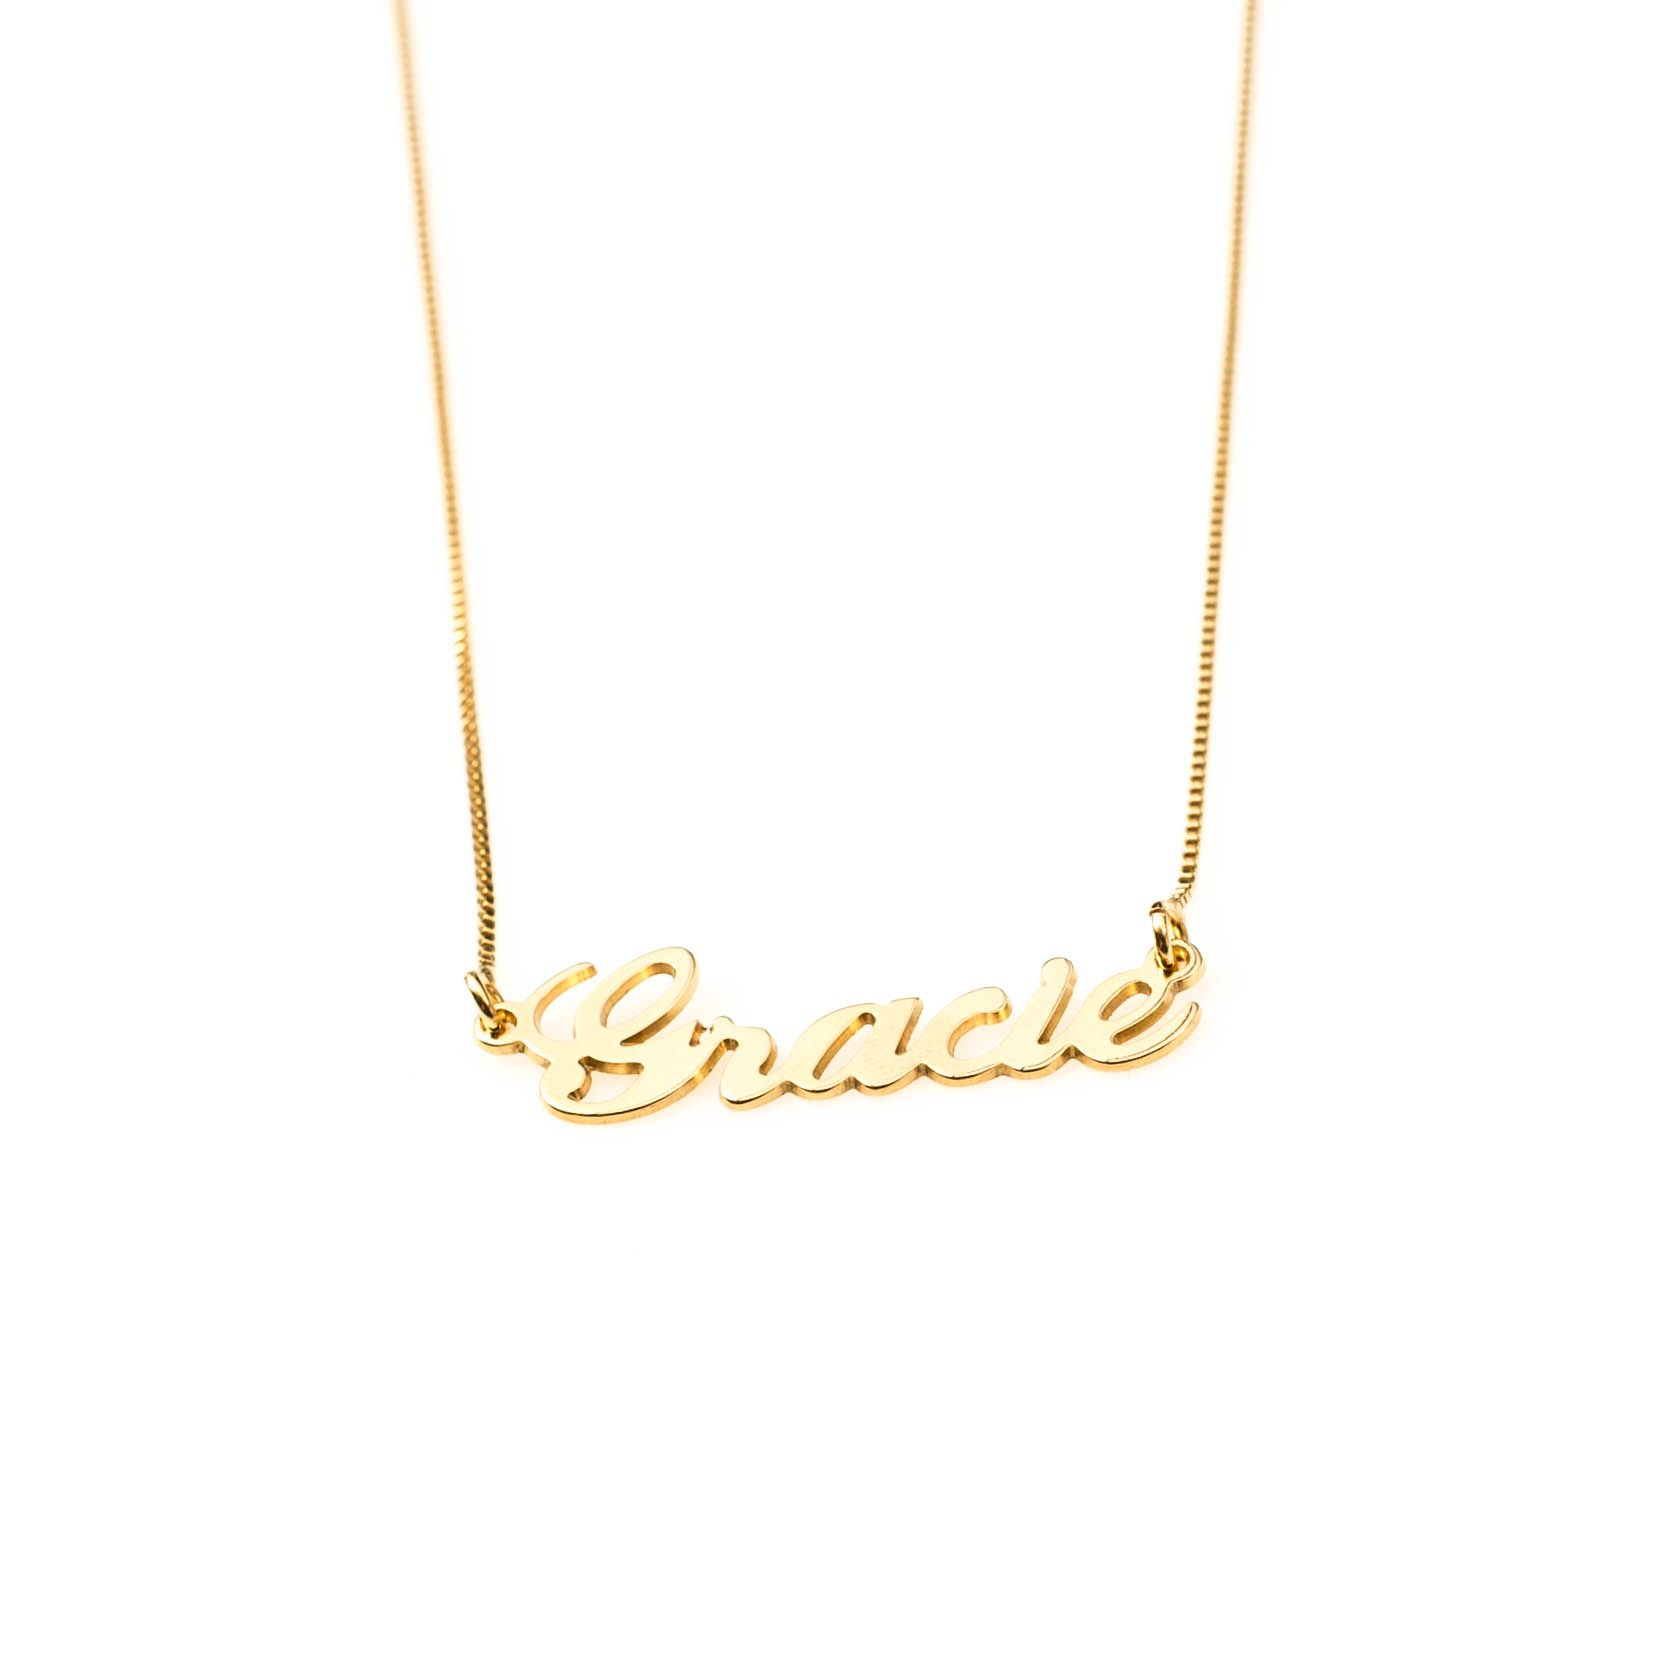 f164e0b6f ... Gold Plated Sterling Silver 'Gracie' name necklace with a Gold plated  Sterling Silver chain. A perfect addition of personalised jewellery,  handmade to ...